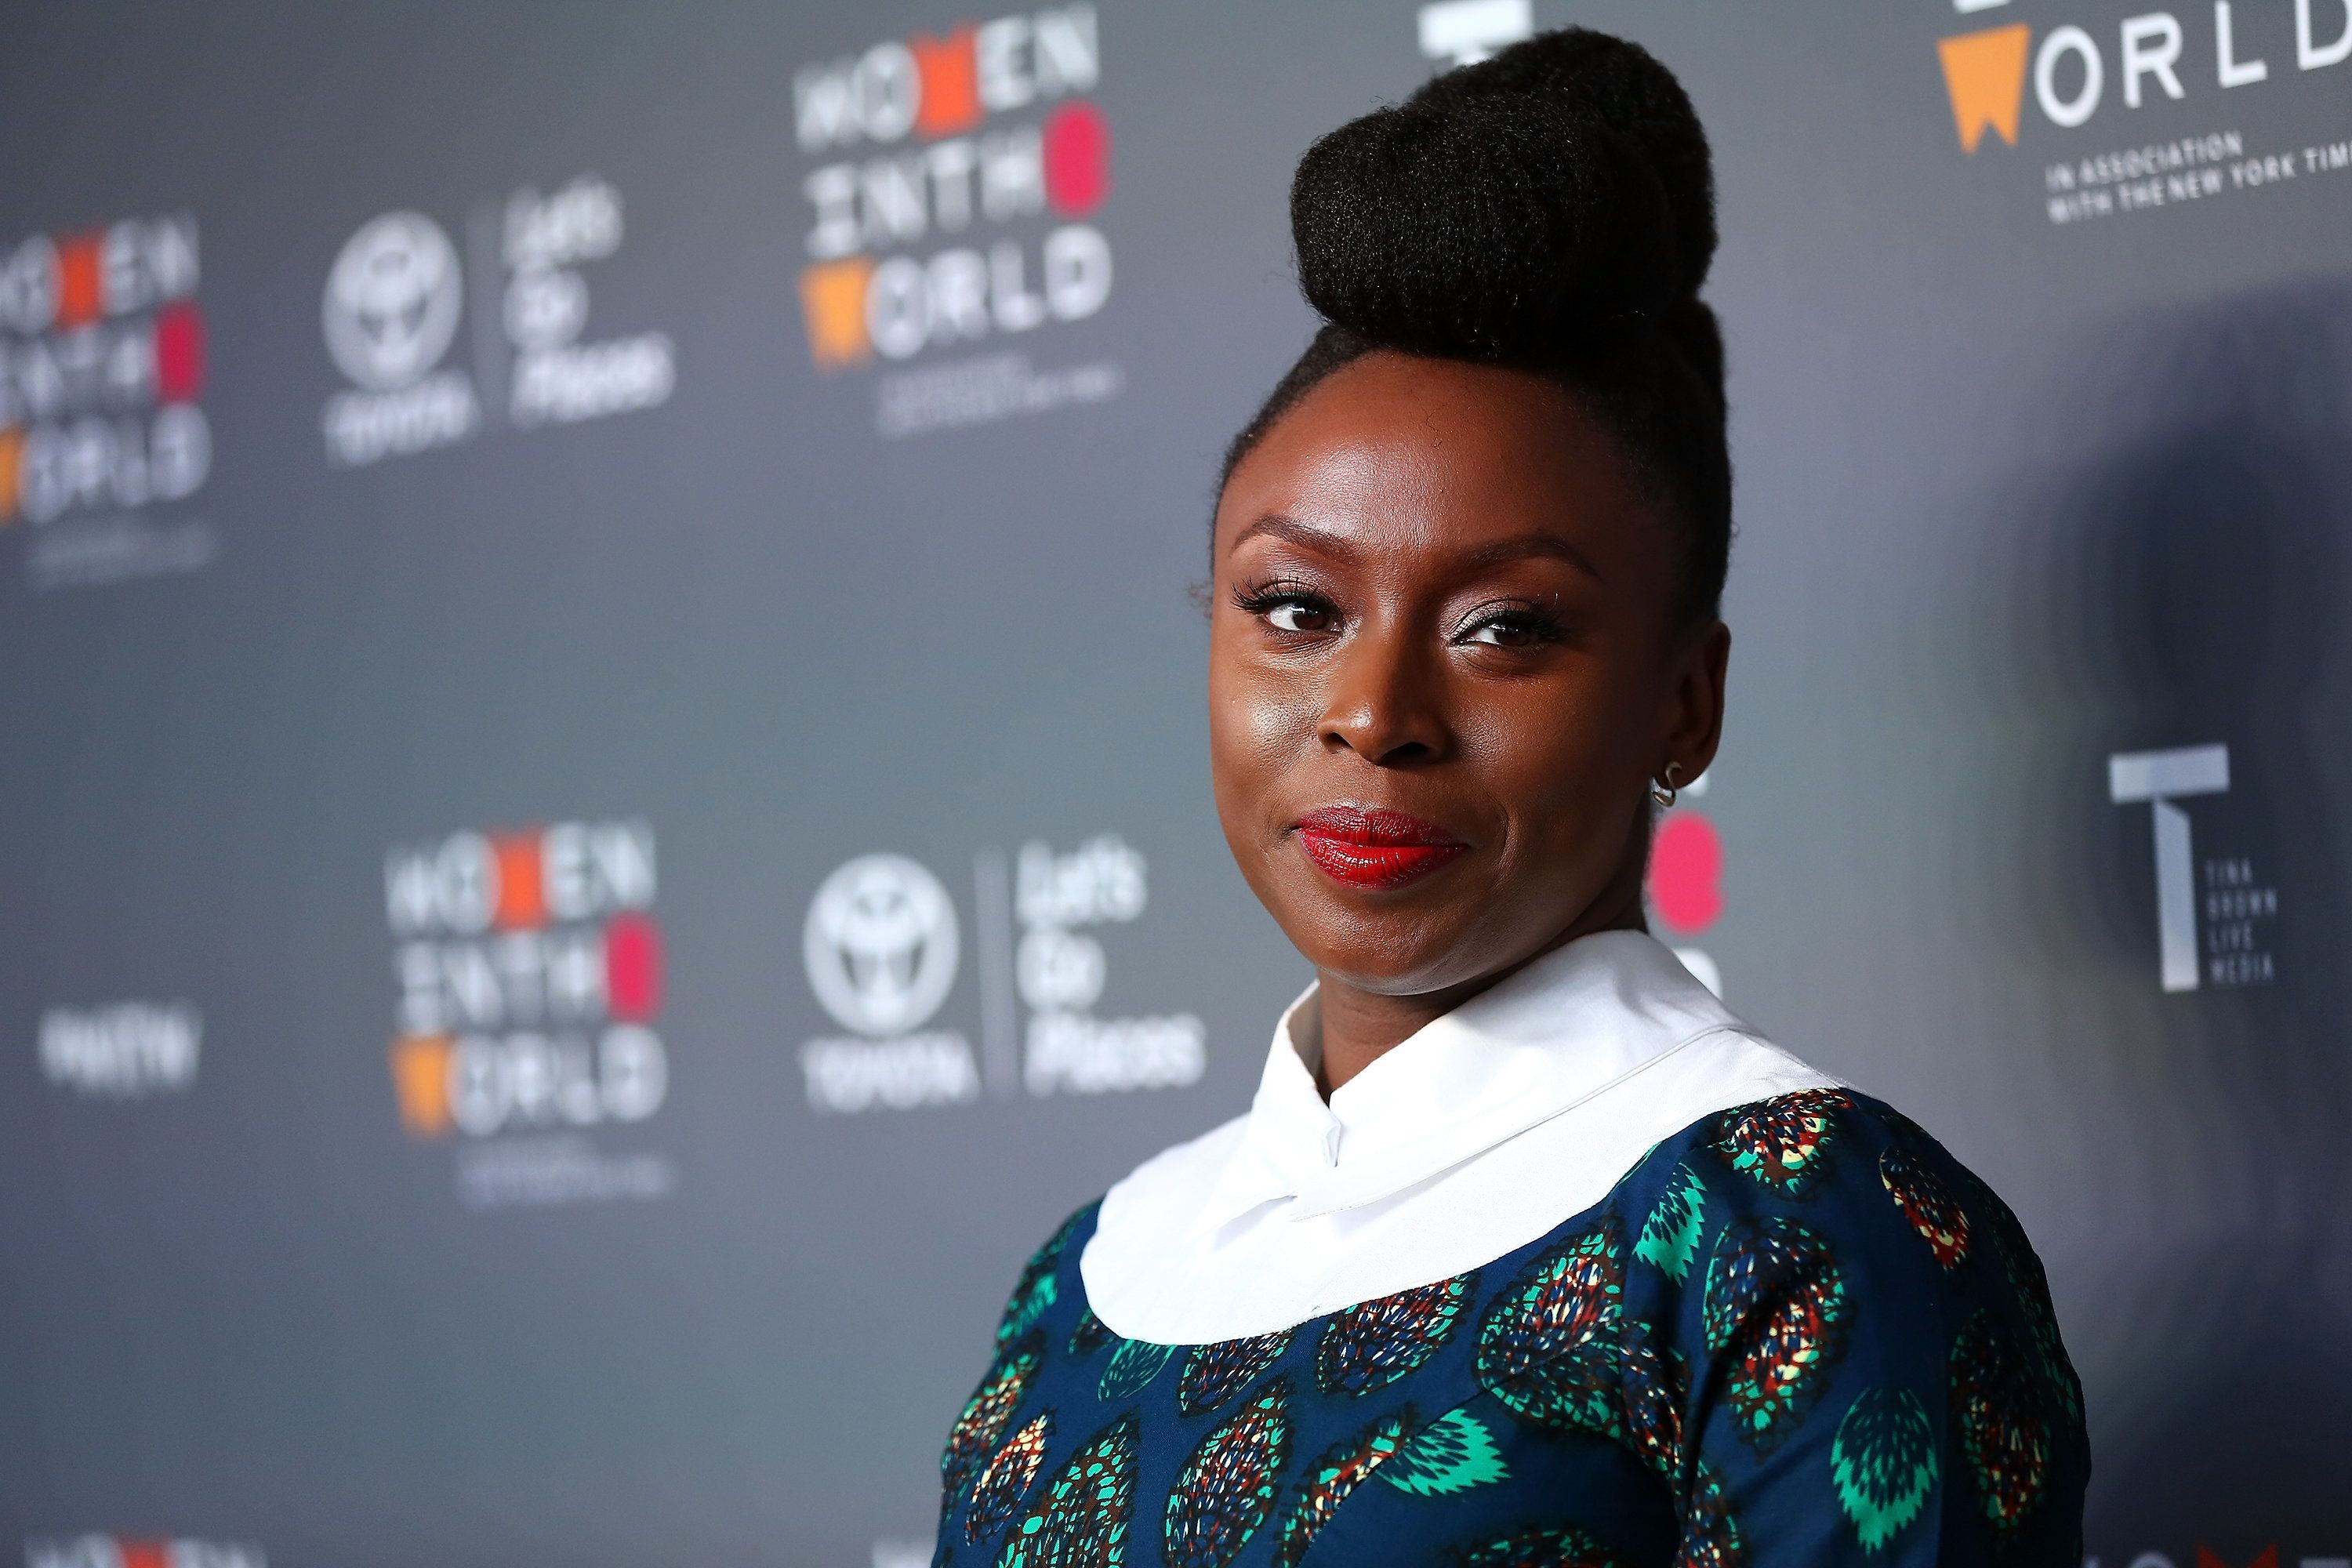 NEW YORK, NY - APRIL 05:  Author Chimamanda Ngozi Adichie attends the 8th Annual Women In The World Summit at Lincoln Center for the Performing Arts on April 5, 2017 in New York City.  (Photo by Monica Schipper/WireImage)